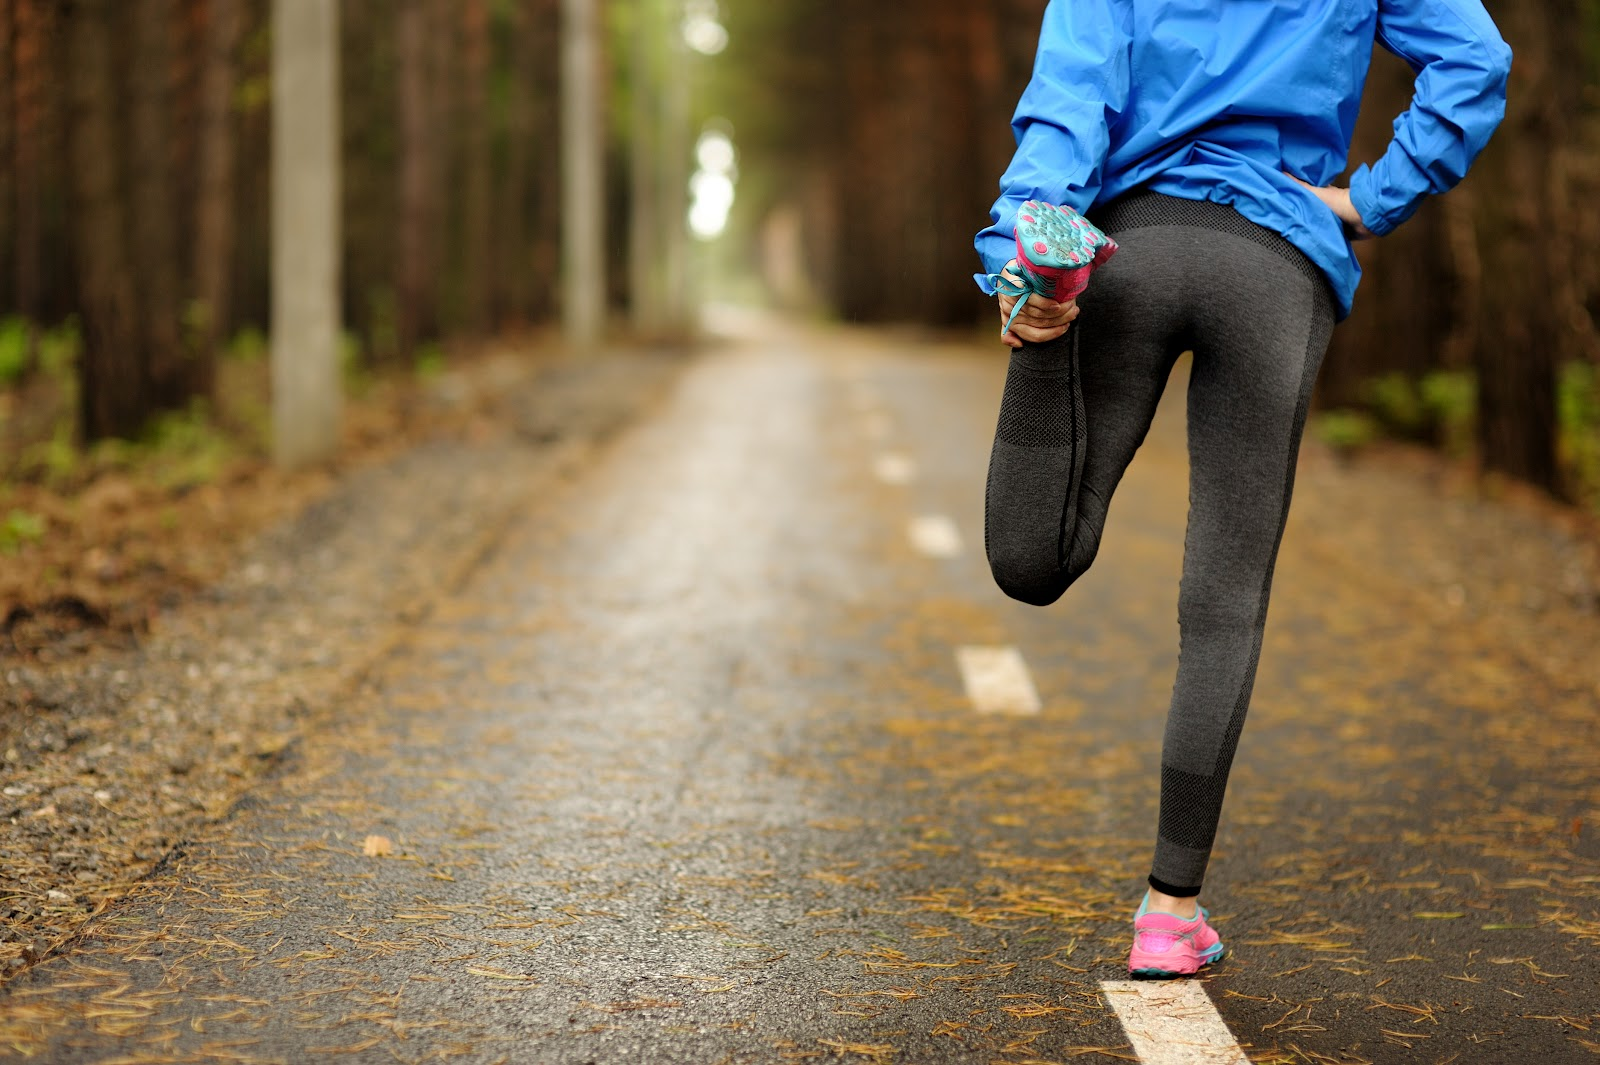 Runner's Butt Syndrome can cause serious pain.